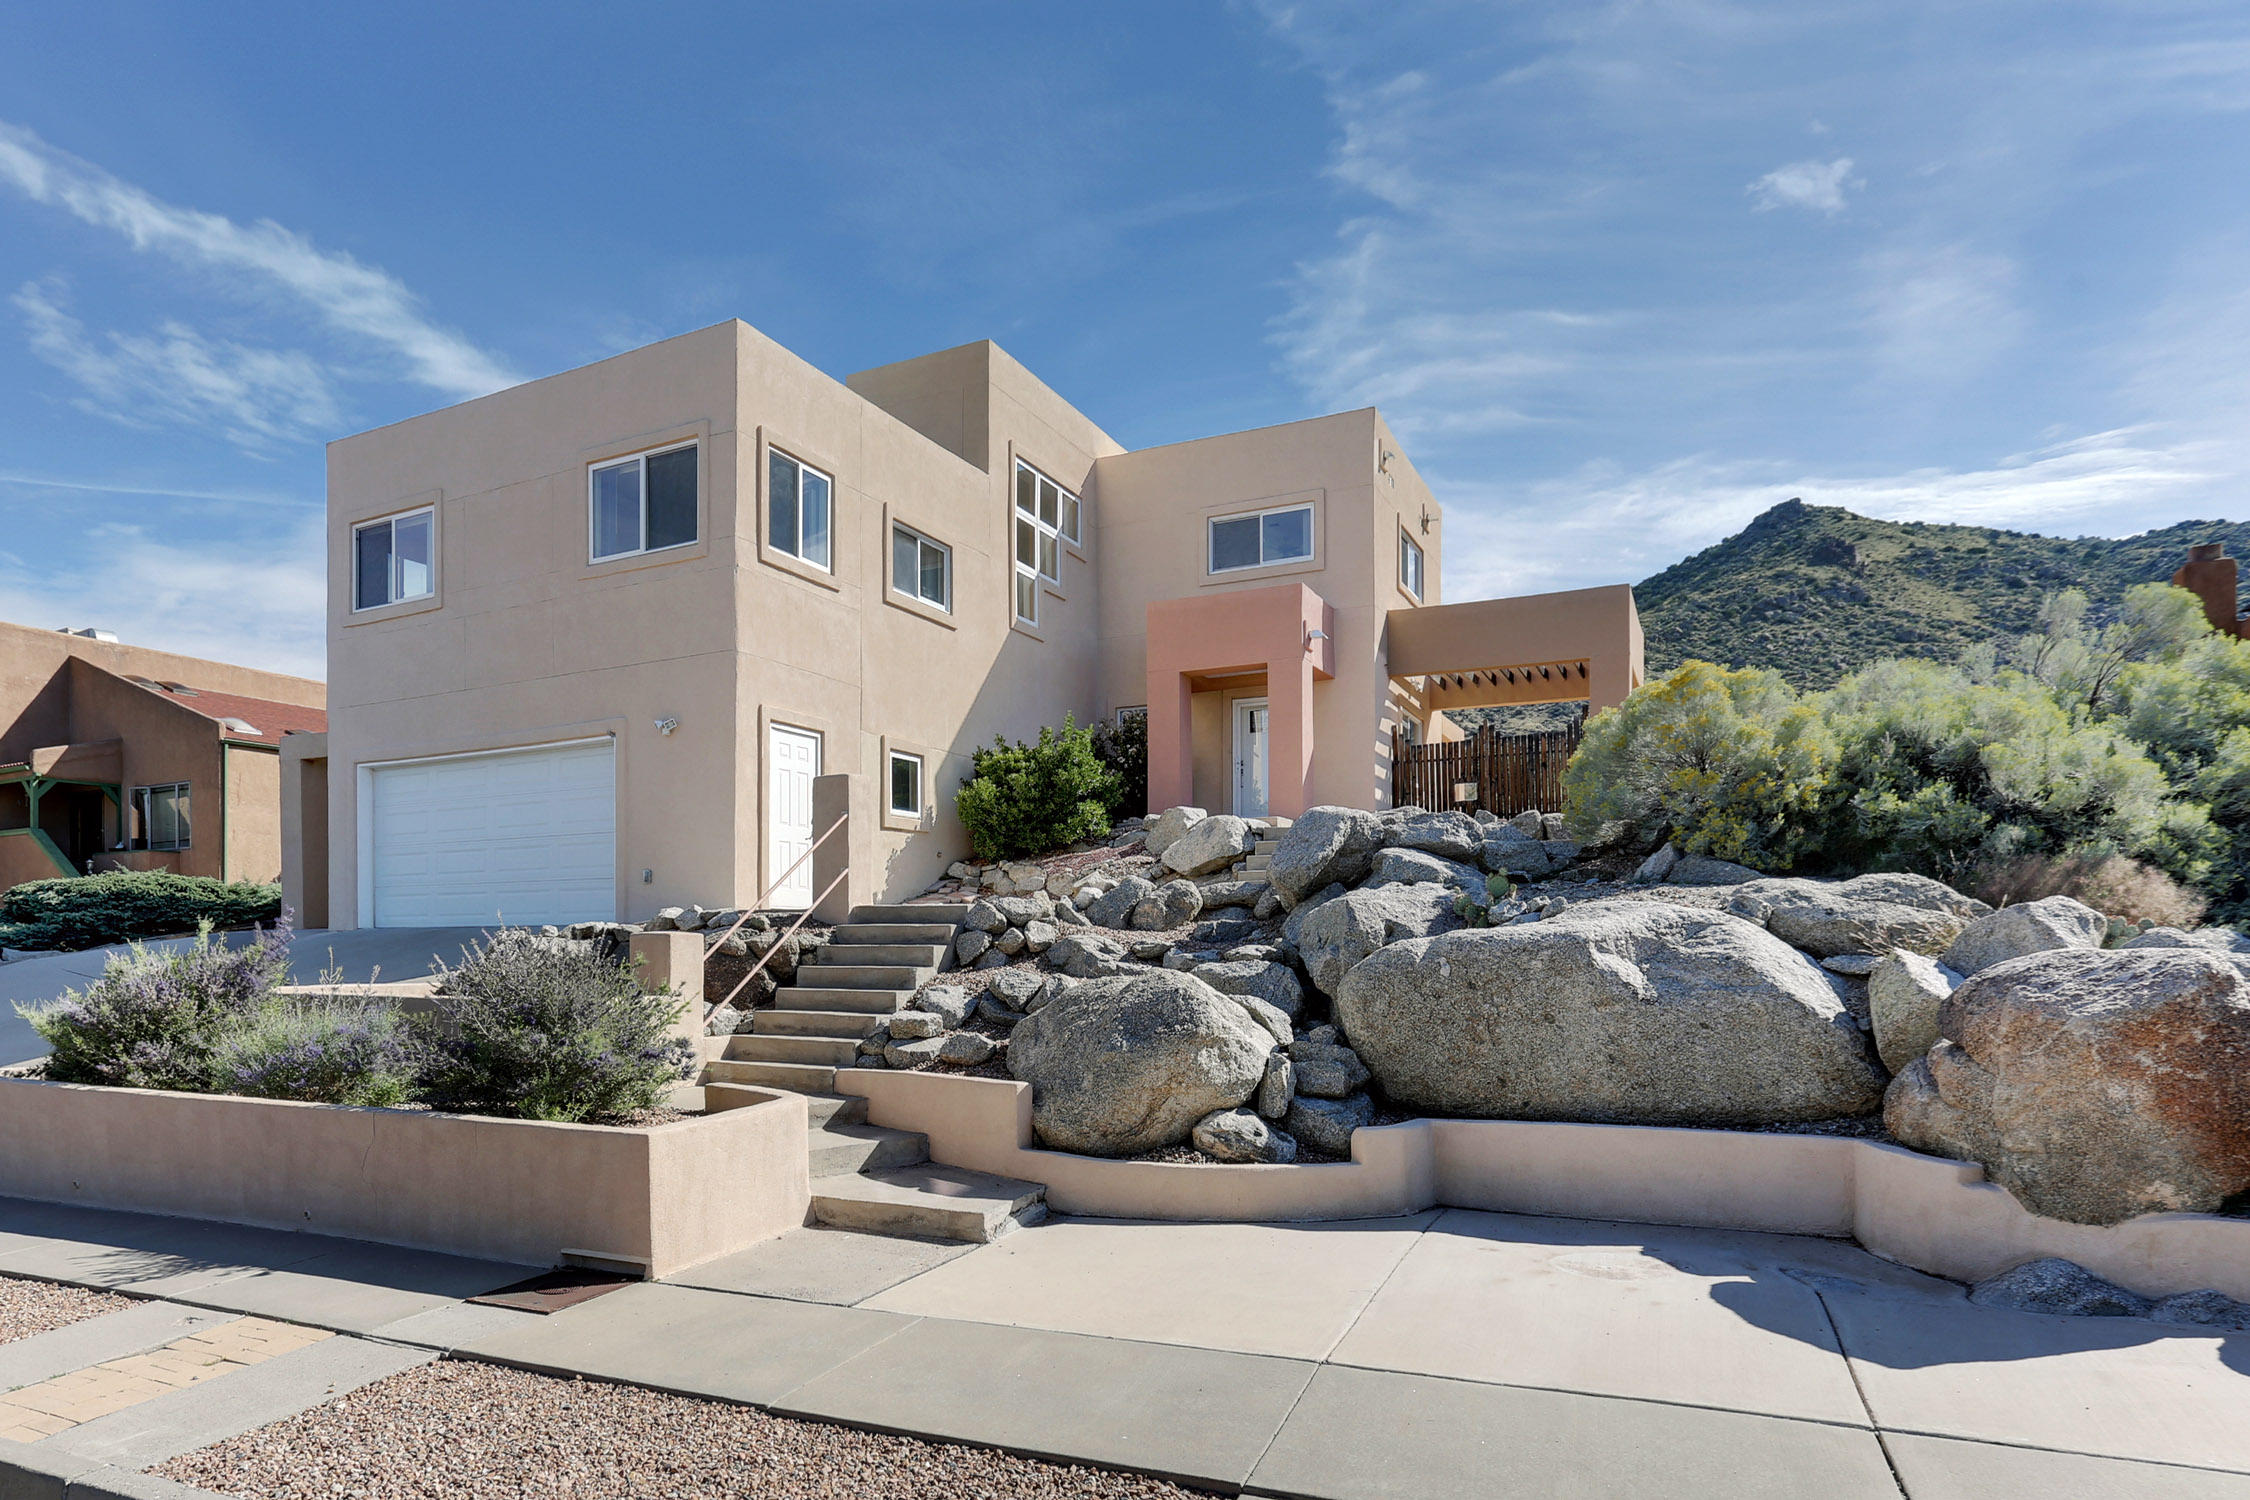 712 Supper Rock,Albuquerque,New Mexico,United States 87123,3 Bedrooms Bedrooms,3 BathroomsBathrooms,Residential,Supper Rock,929796